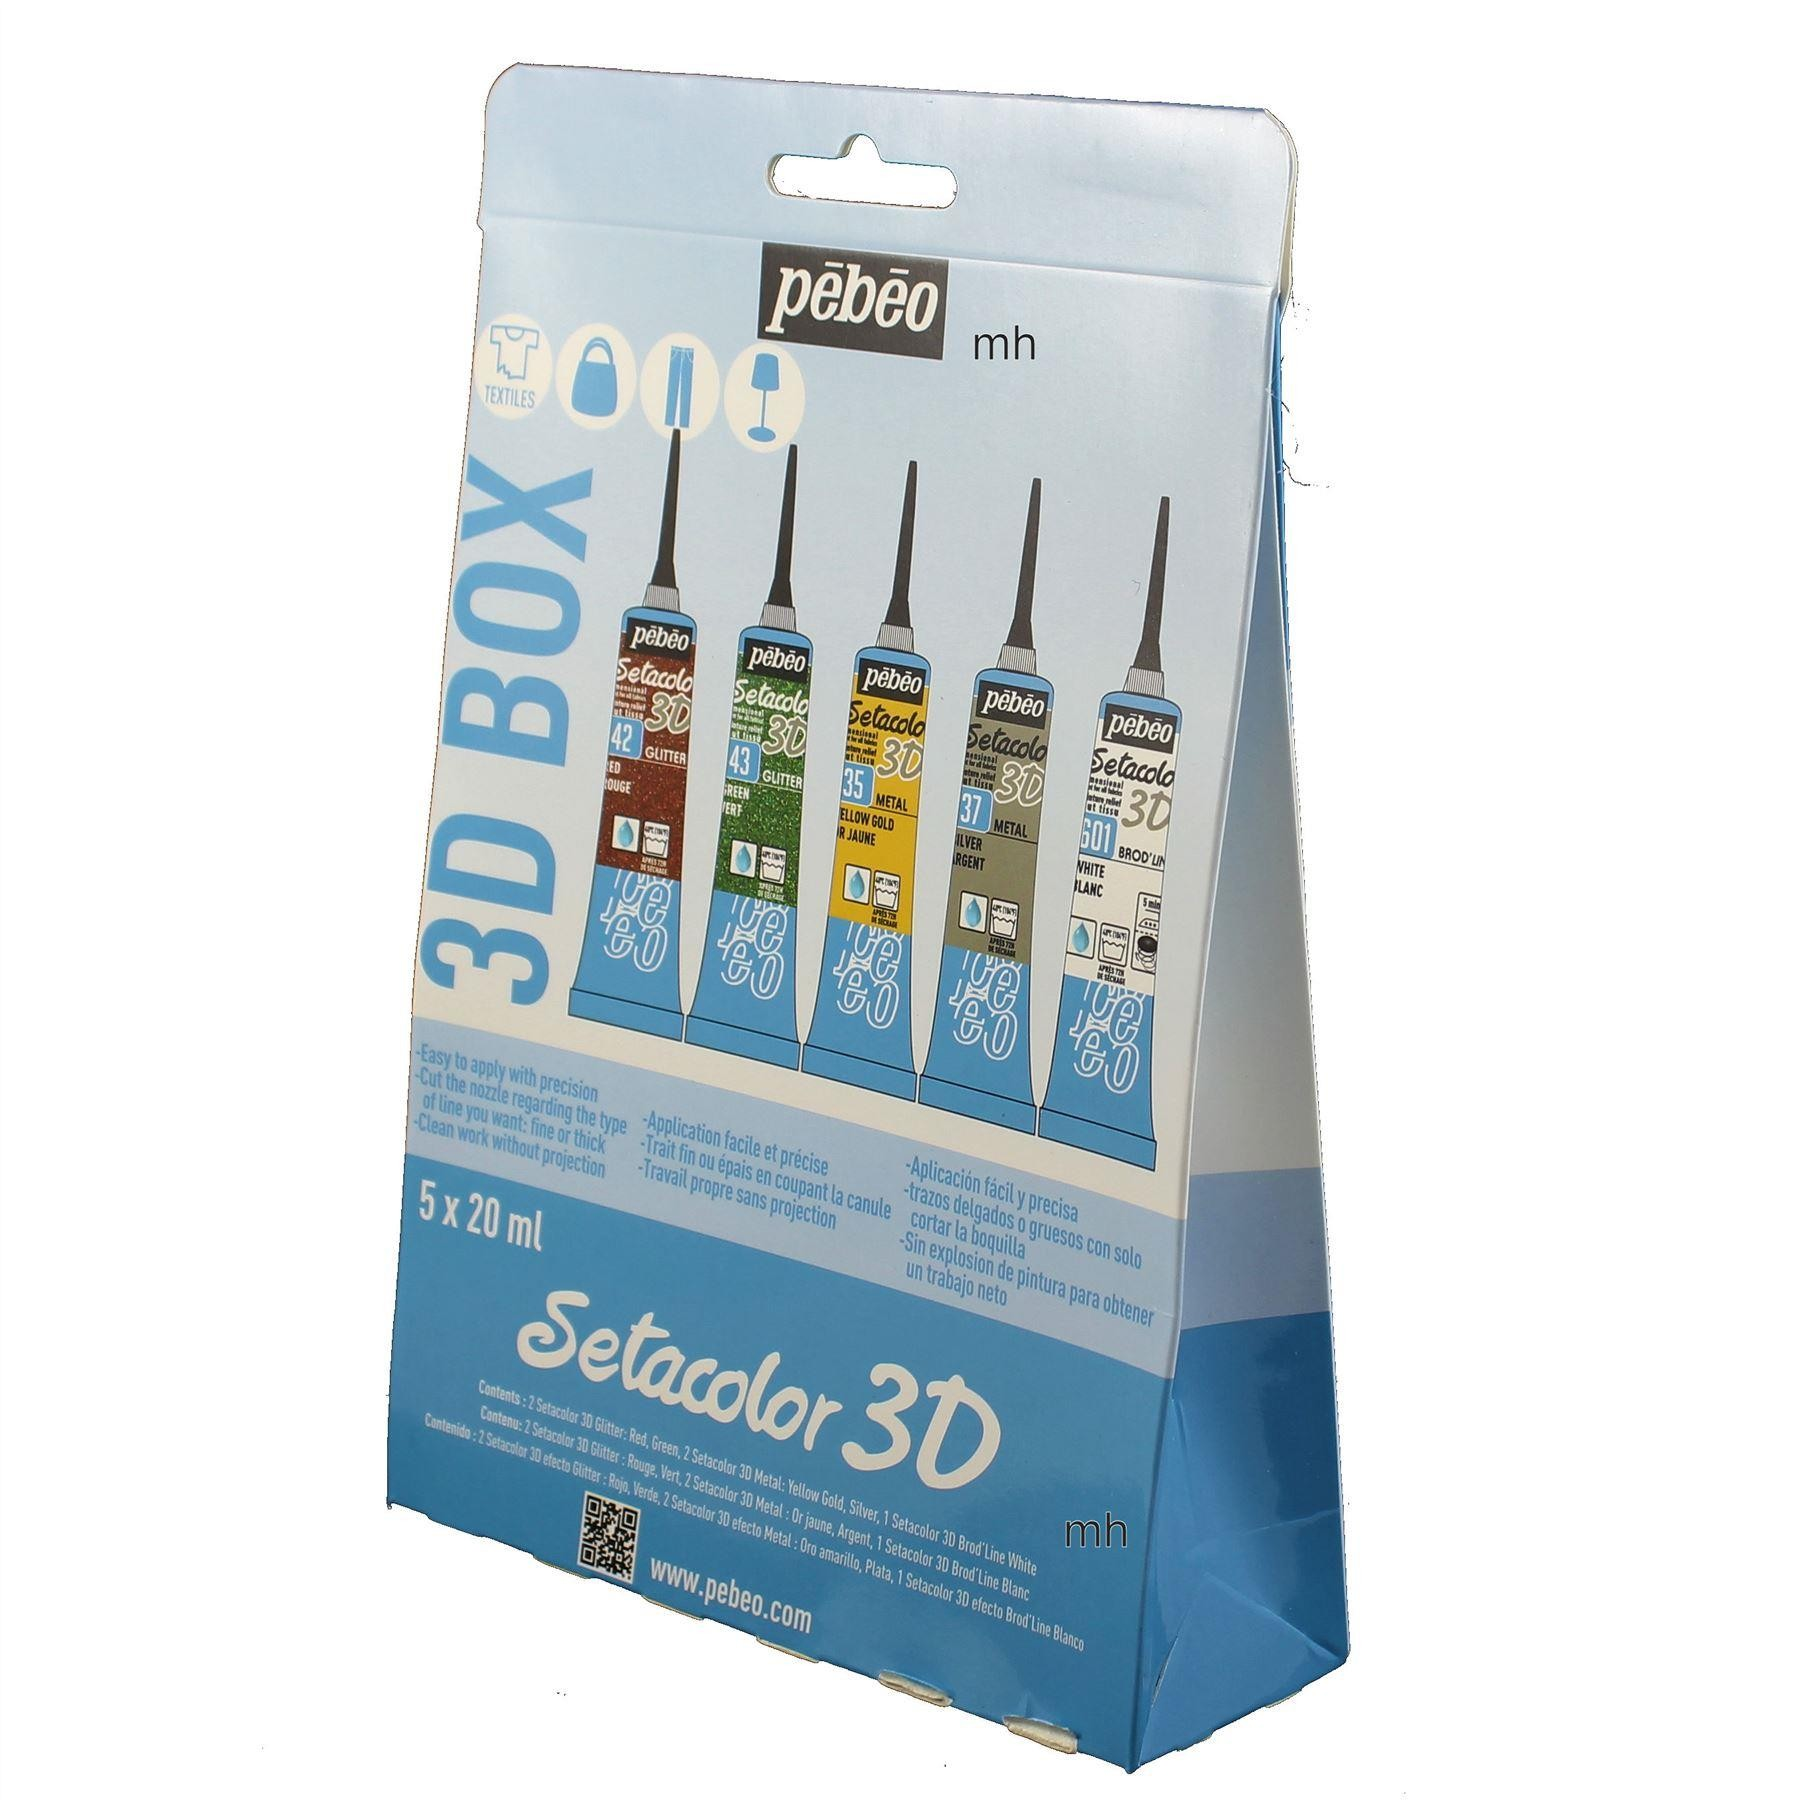 Pebeo setacolor 3-D assorted set of fabric gutter paints